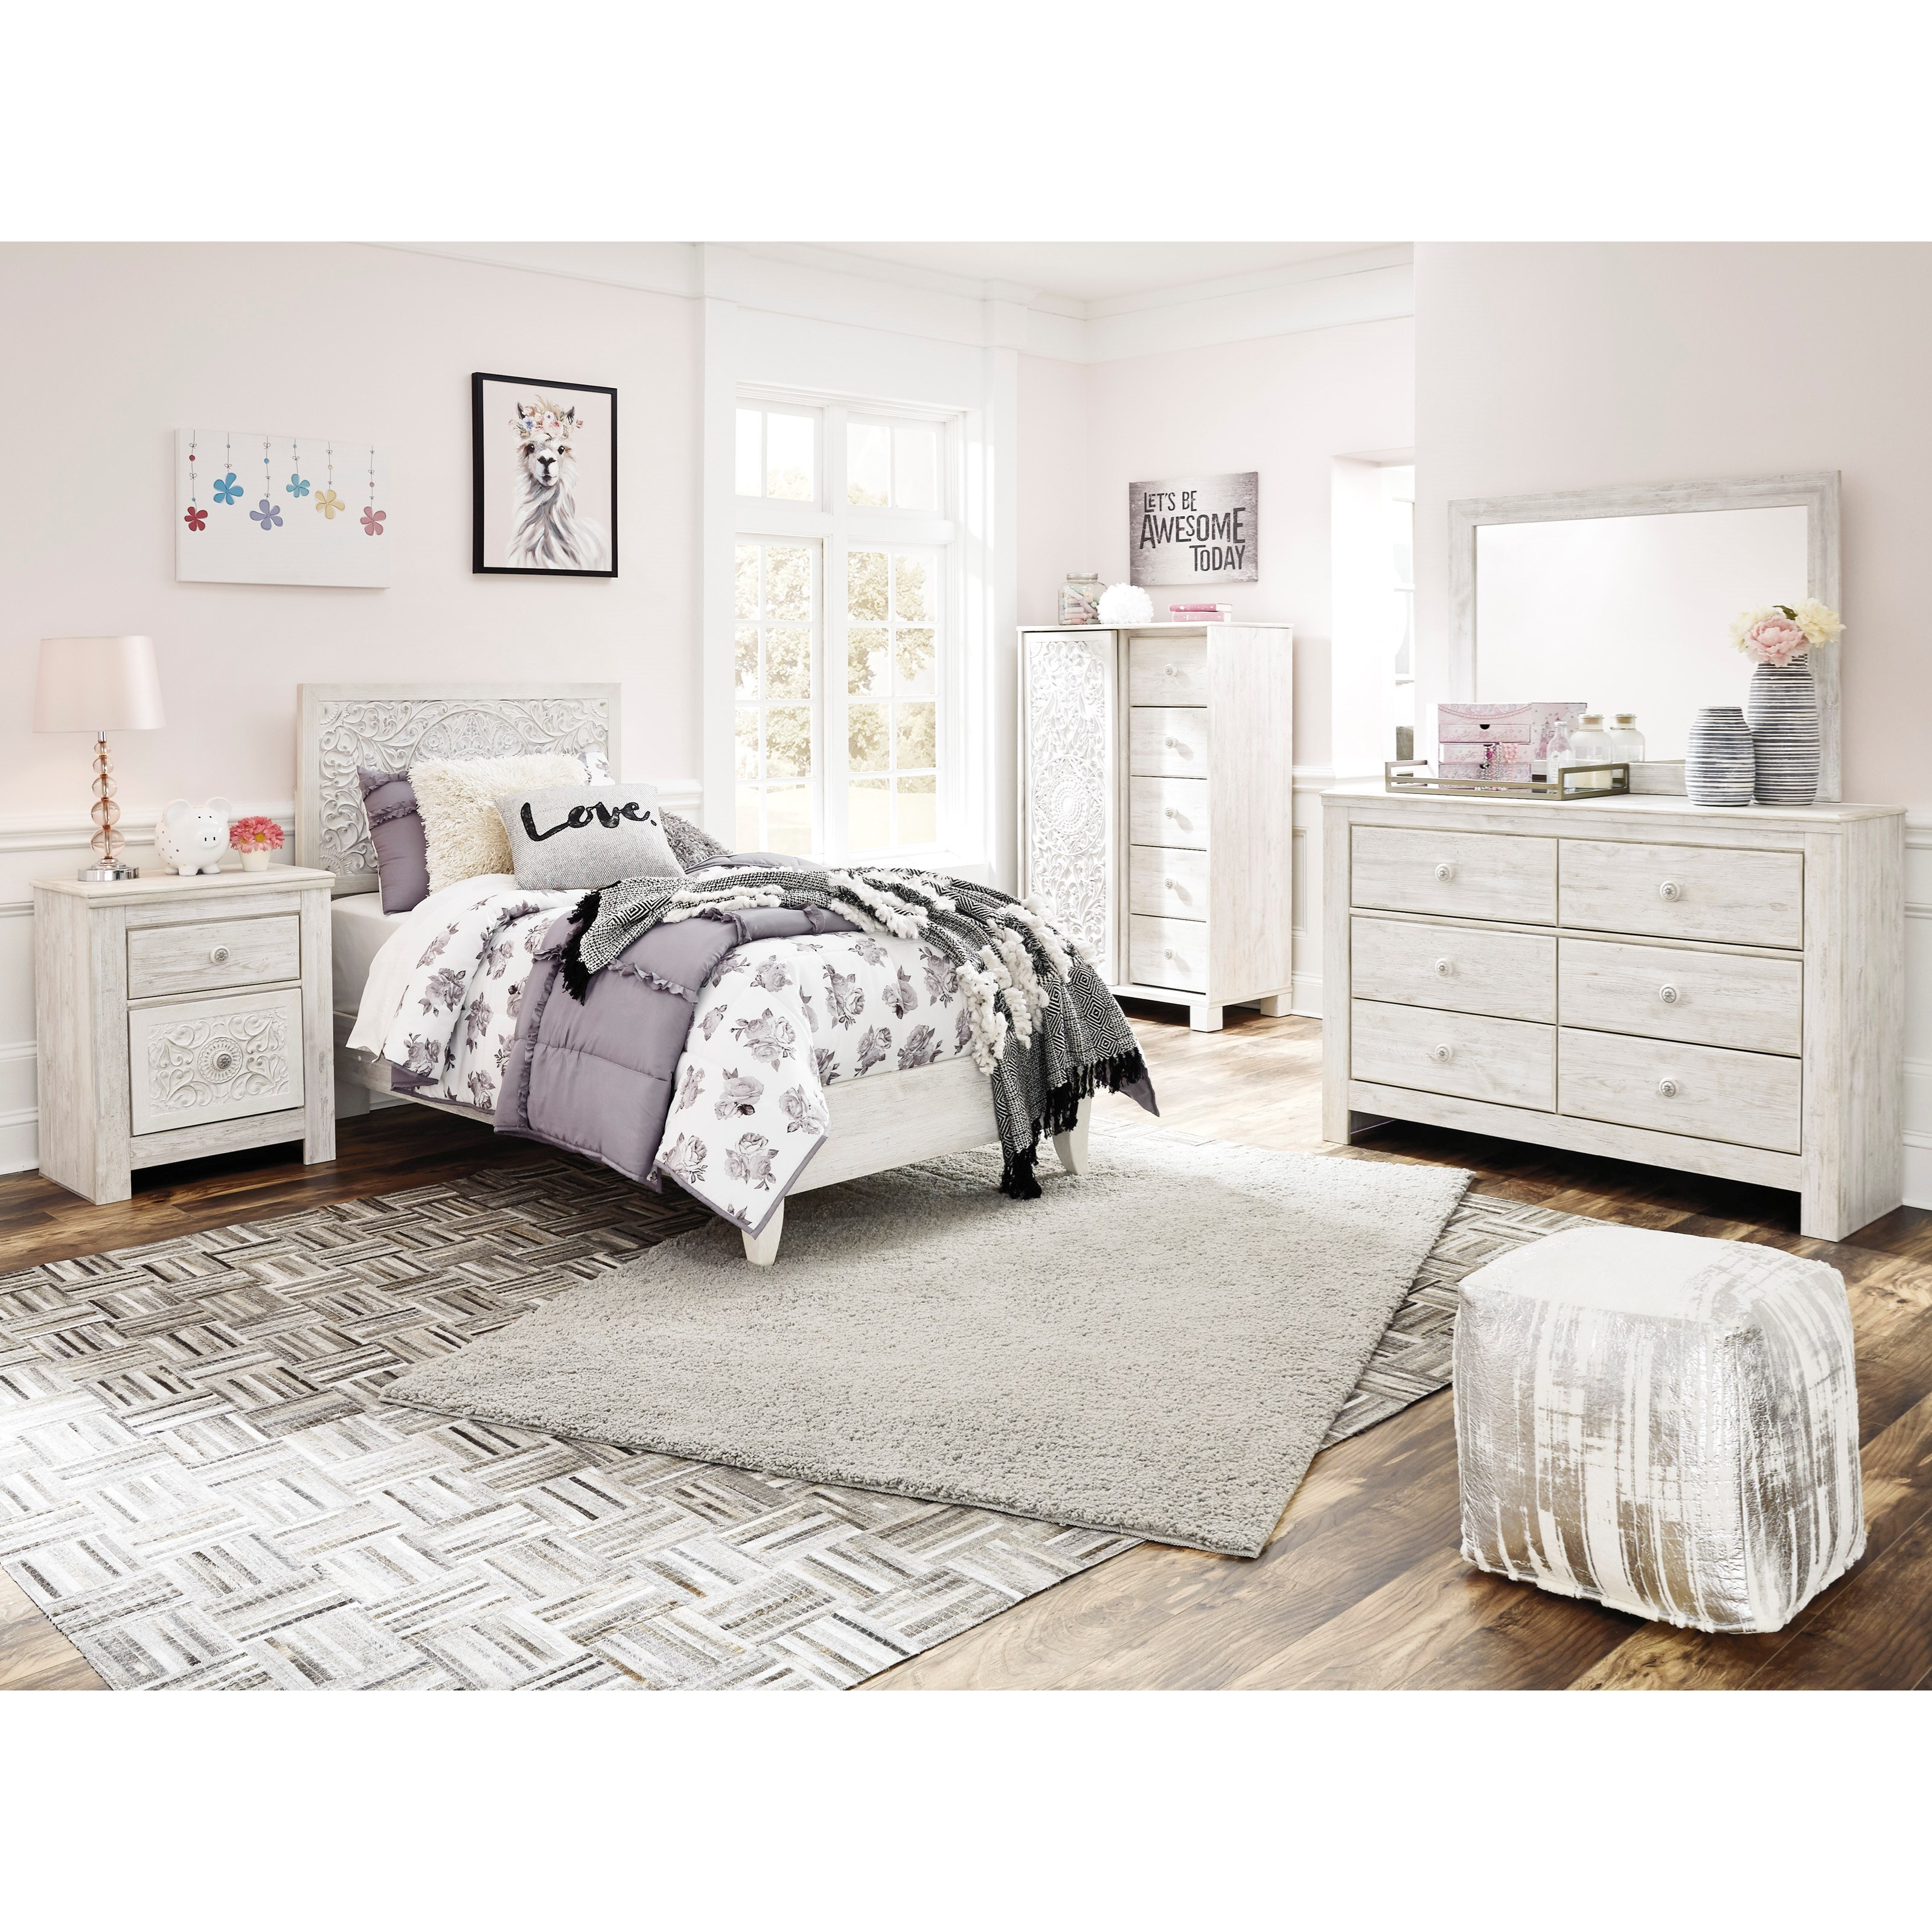 Paxberry Twin Bedroom Group by Signature Design by Ashley at Beck's Furniture